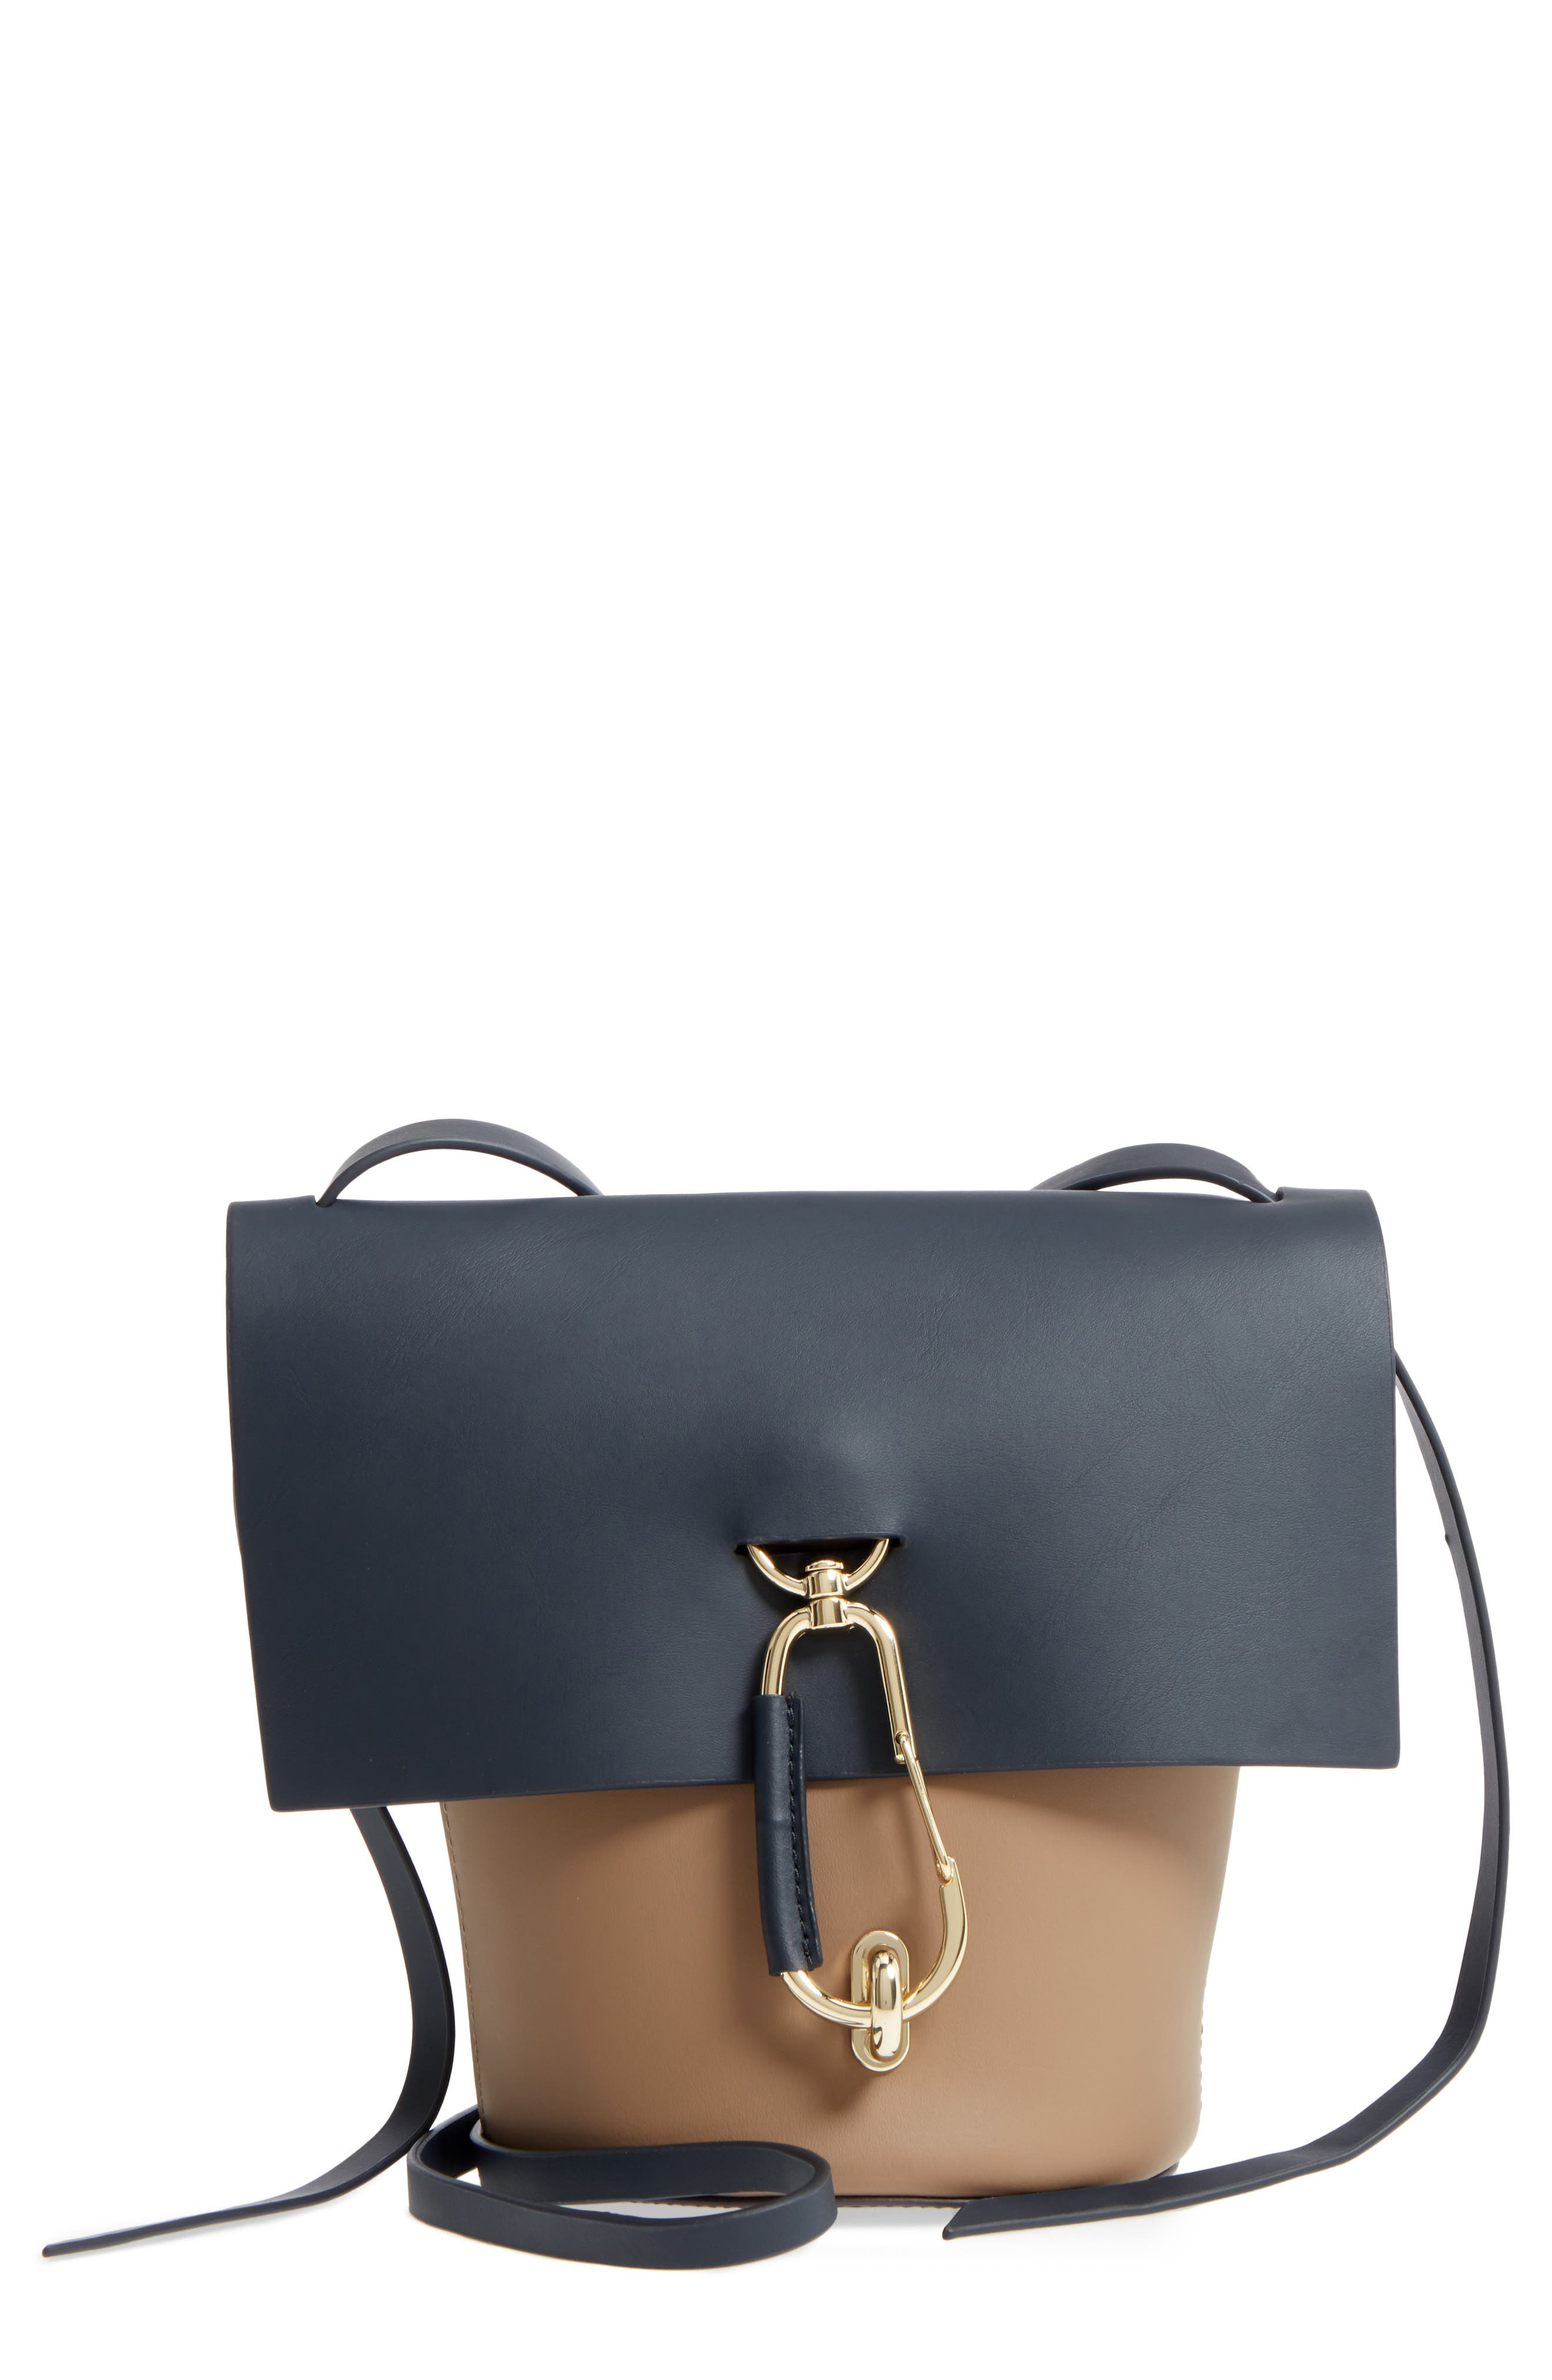 ZAC Zac Posen Belay Colorblock Calfskin Leather Crossbody Bucket Bag